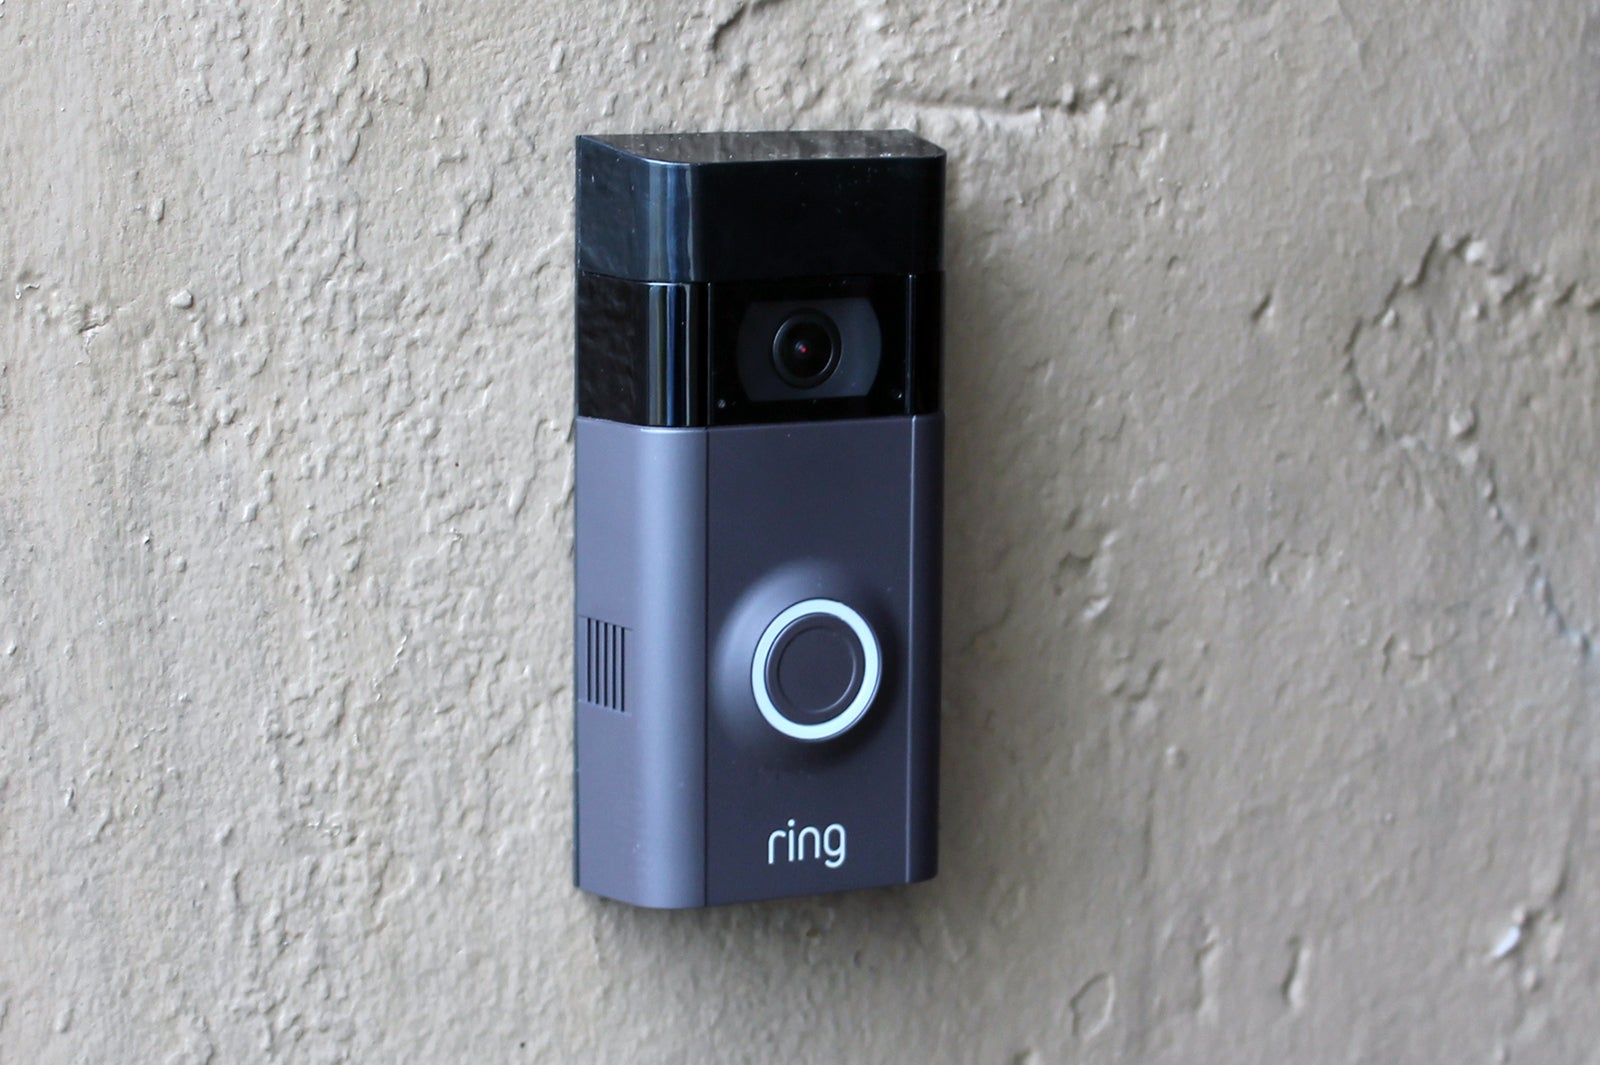 hight resolution of ring video doorbell 2 review better features new frustrations techhive